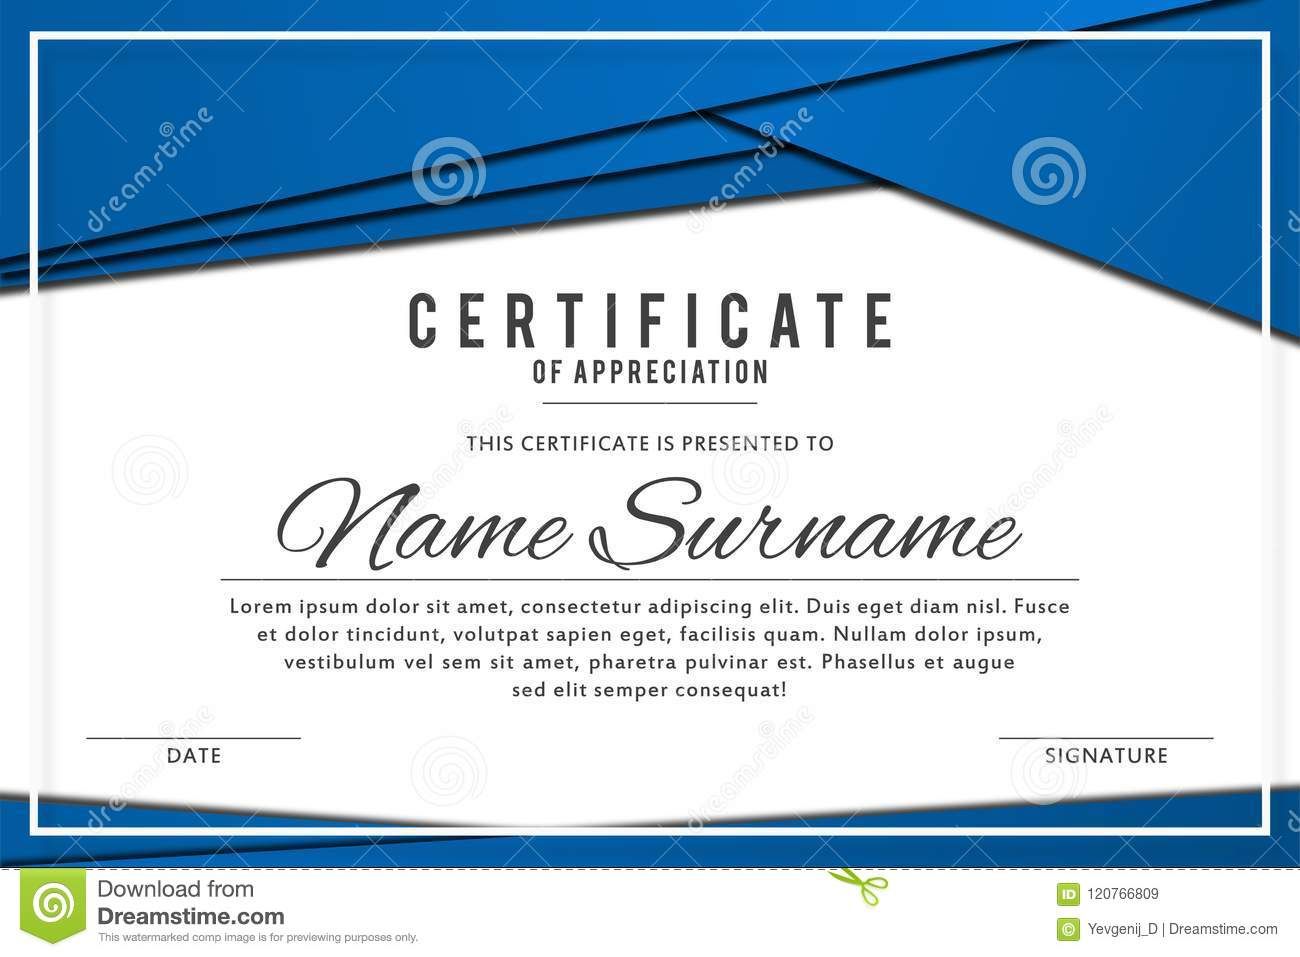 Certificate Template In Elegant Blue Color With Abstract Borders